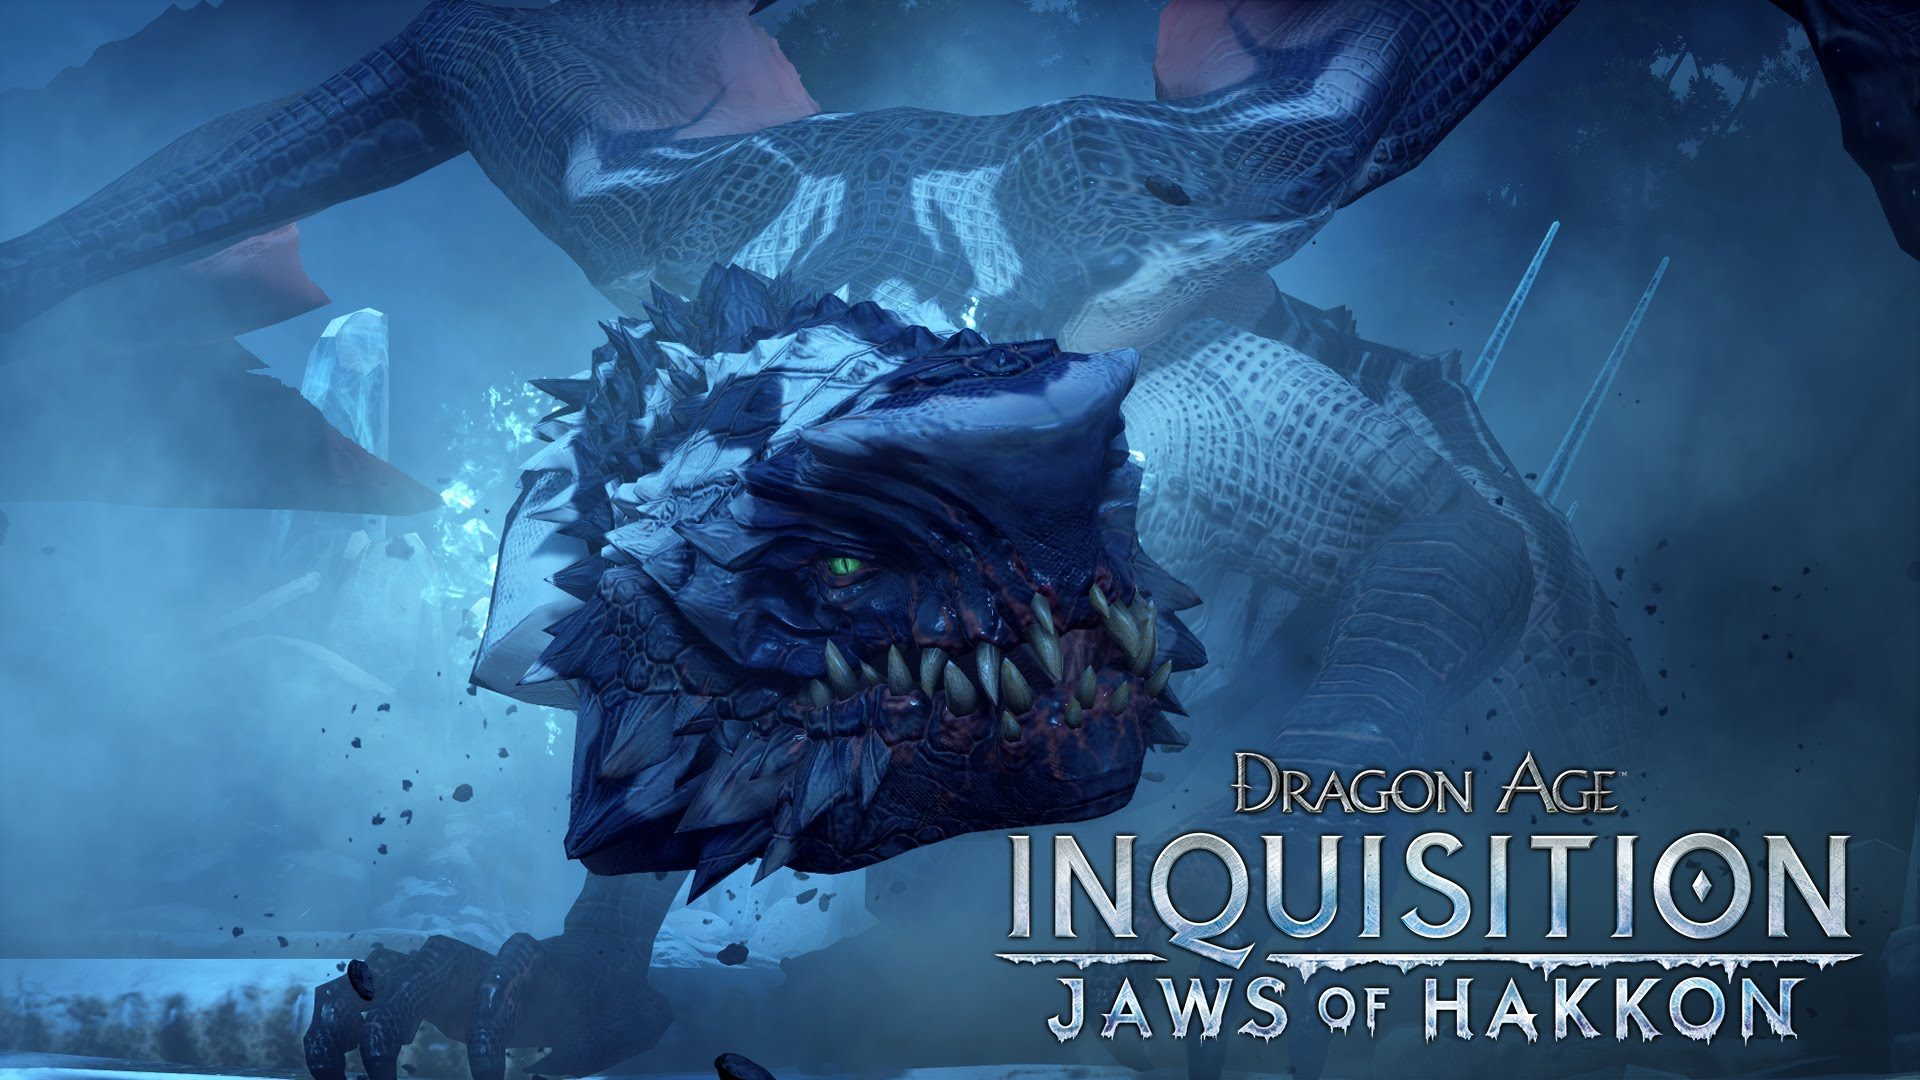 Characters DLC Packs News Media Support Dragon Age Facebook Twitter Youtube Instagram